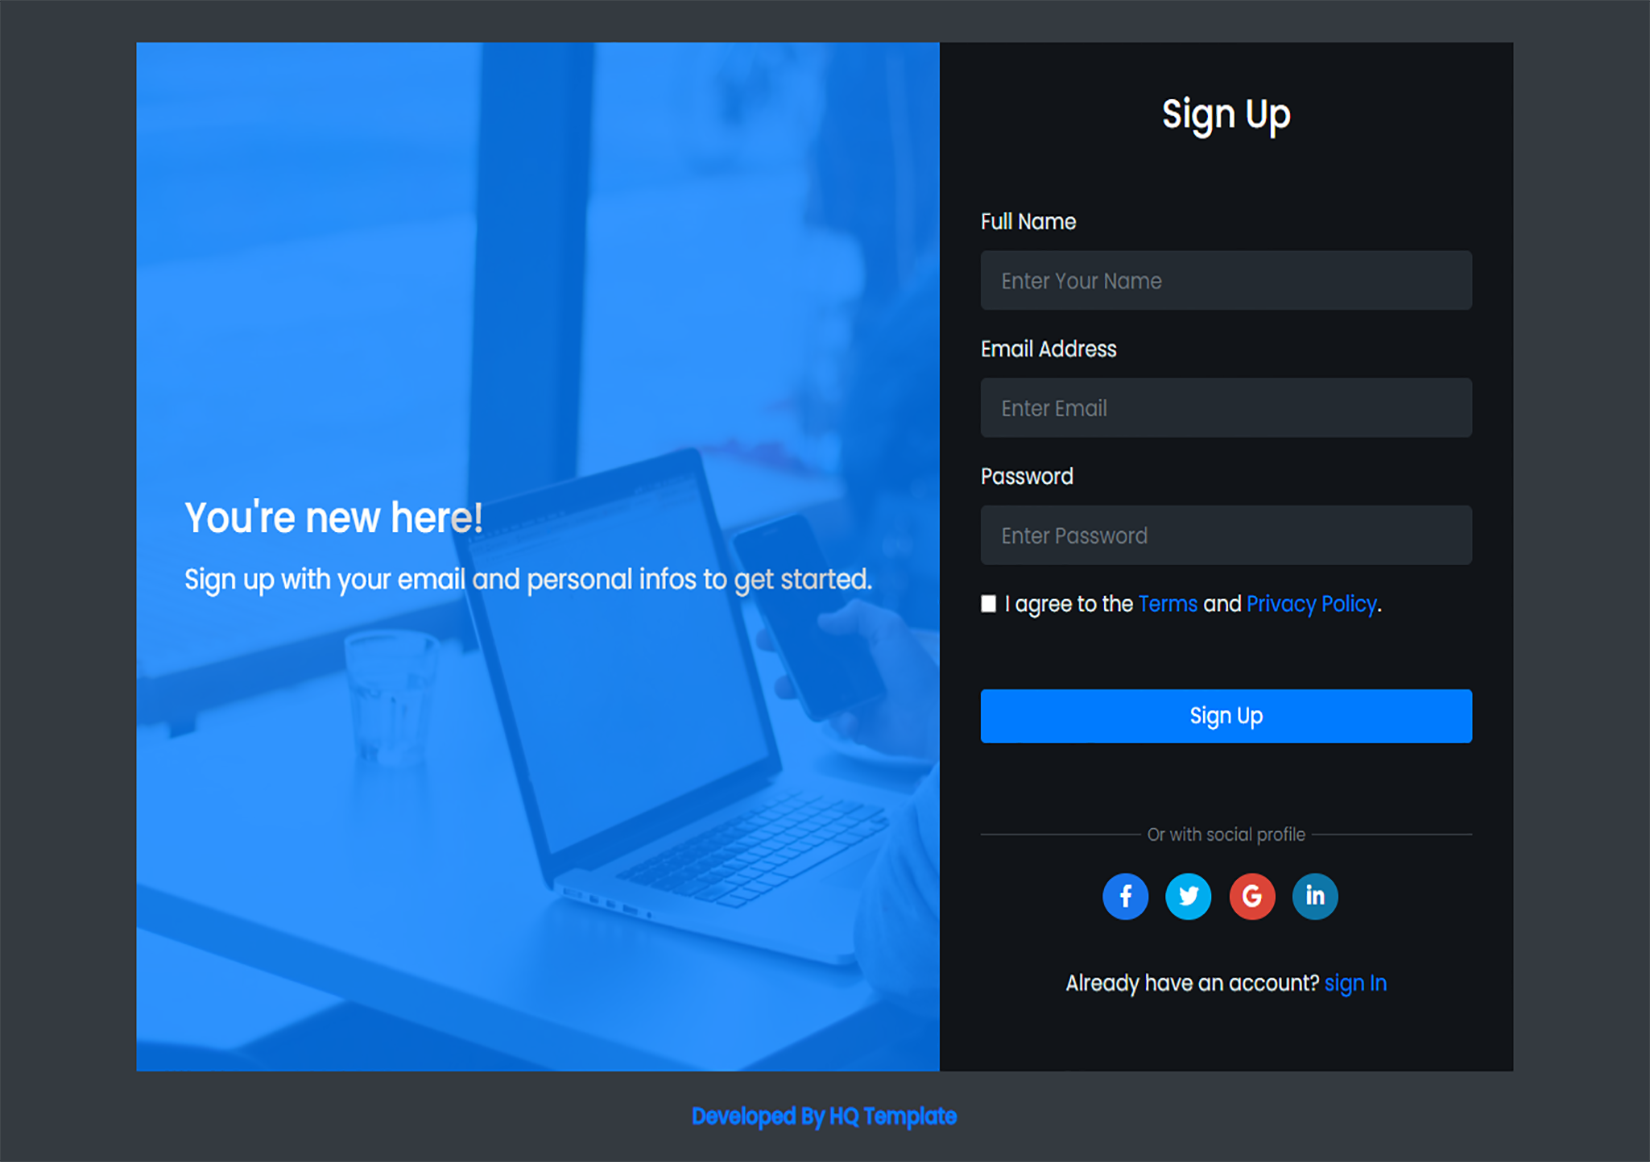 Sign Up Web Page